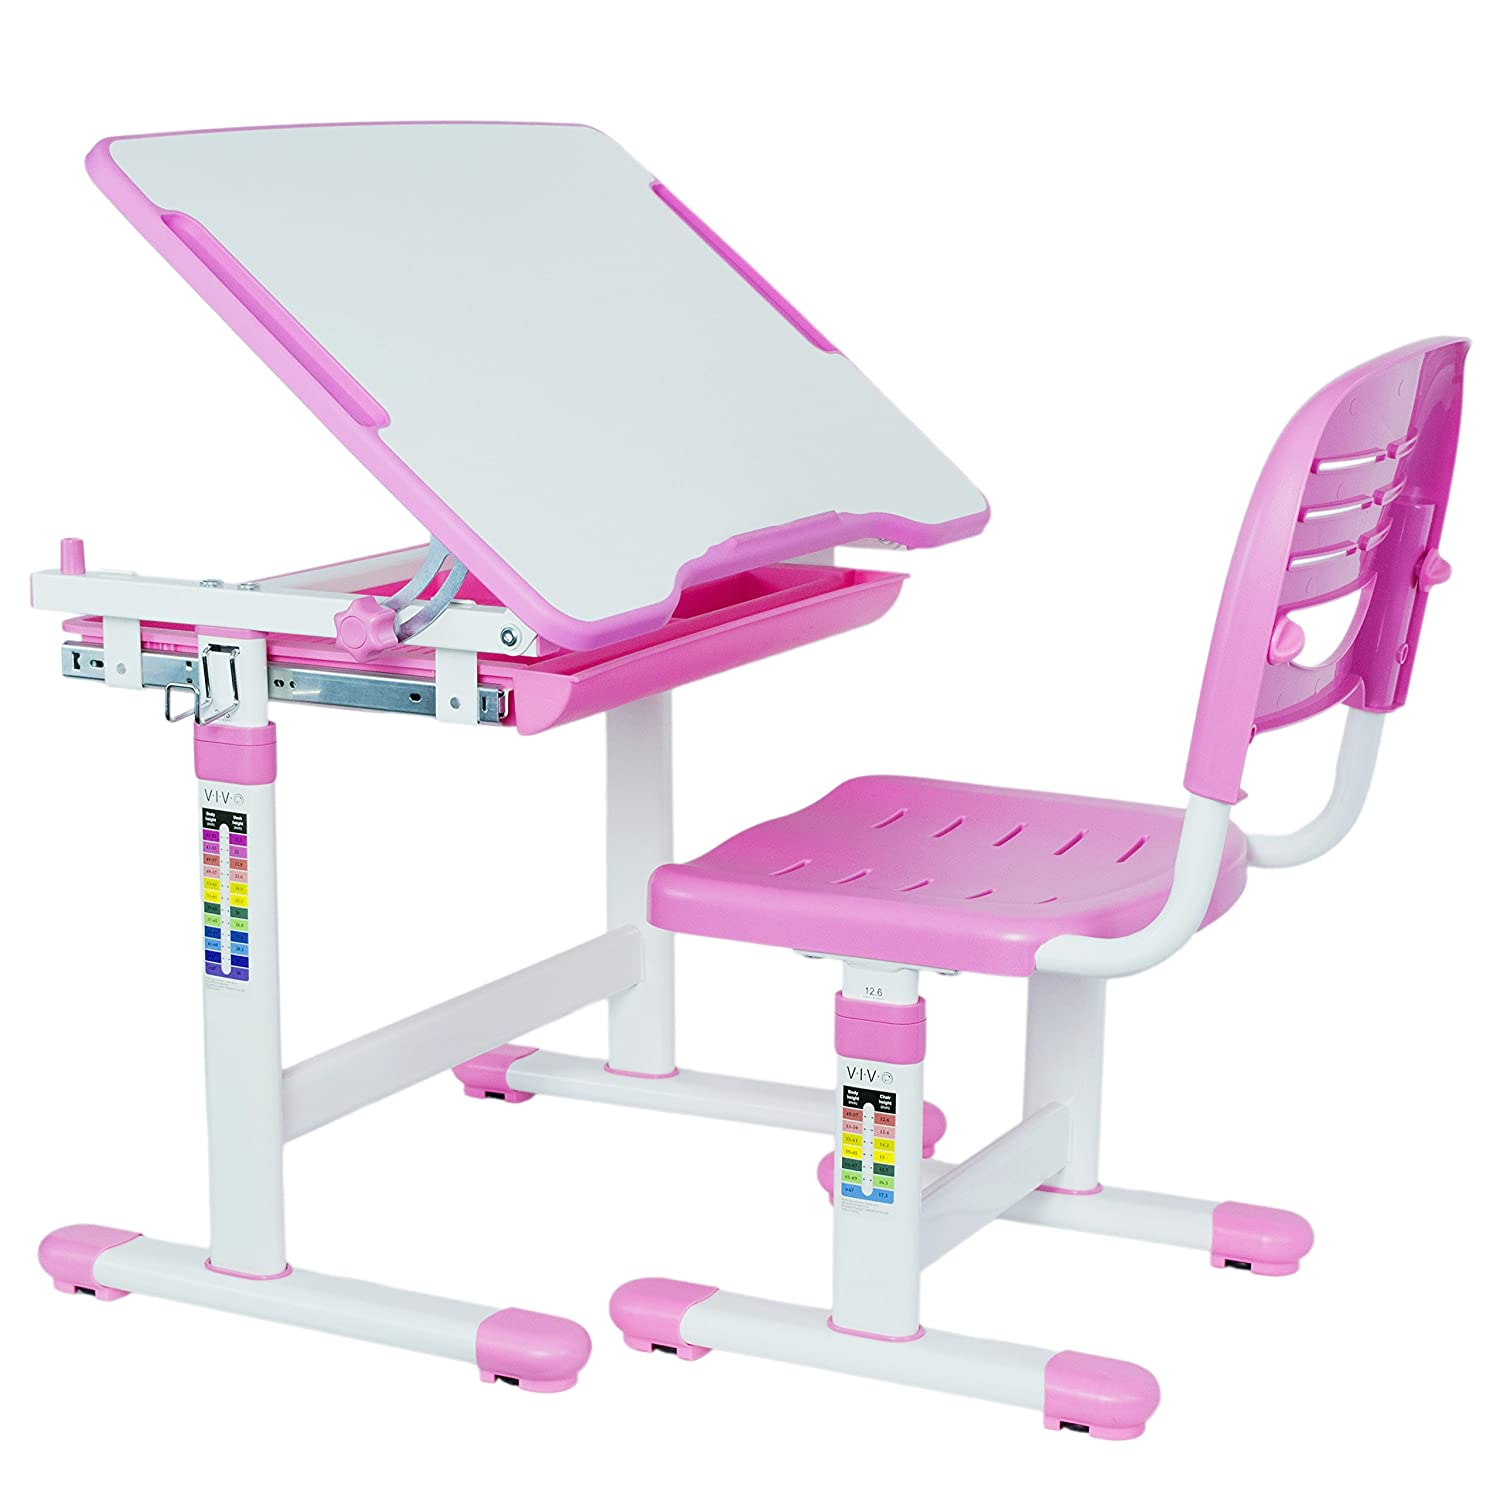 Amazoncom VIVO Height Adjustable Childrens Desk and Chair Set